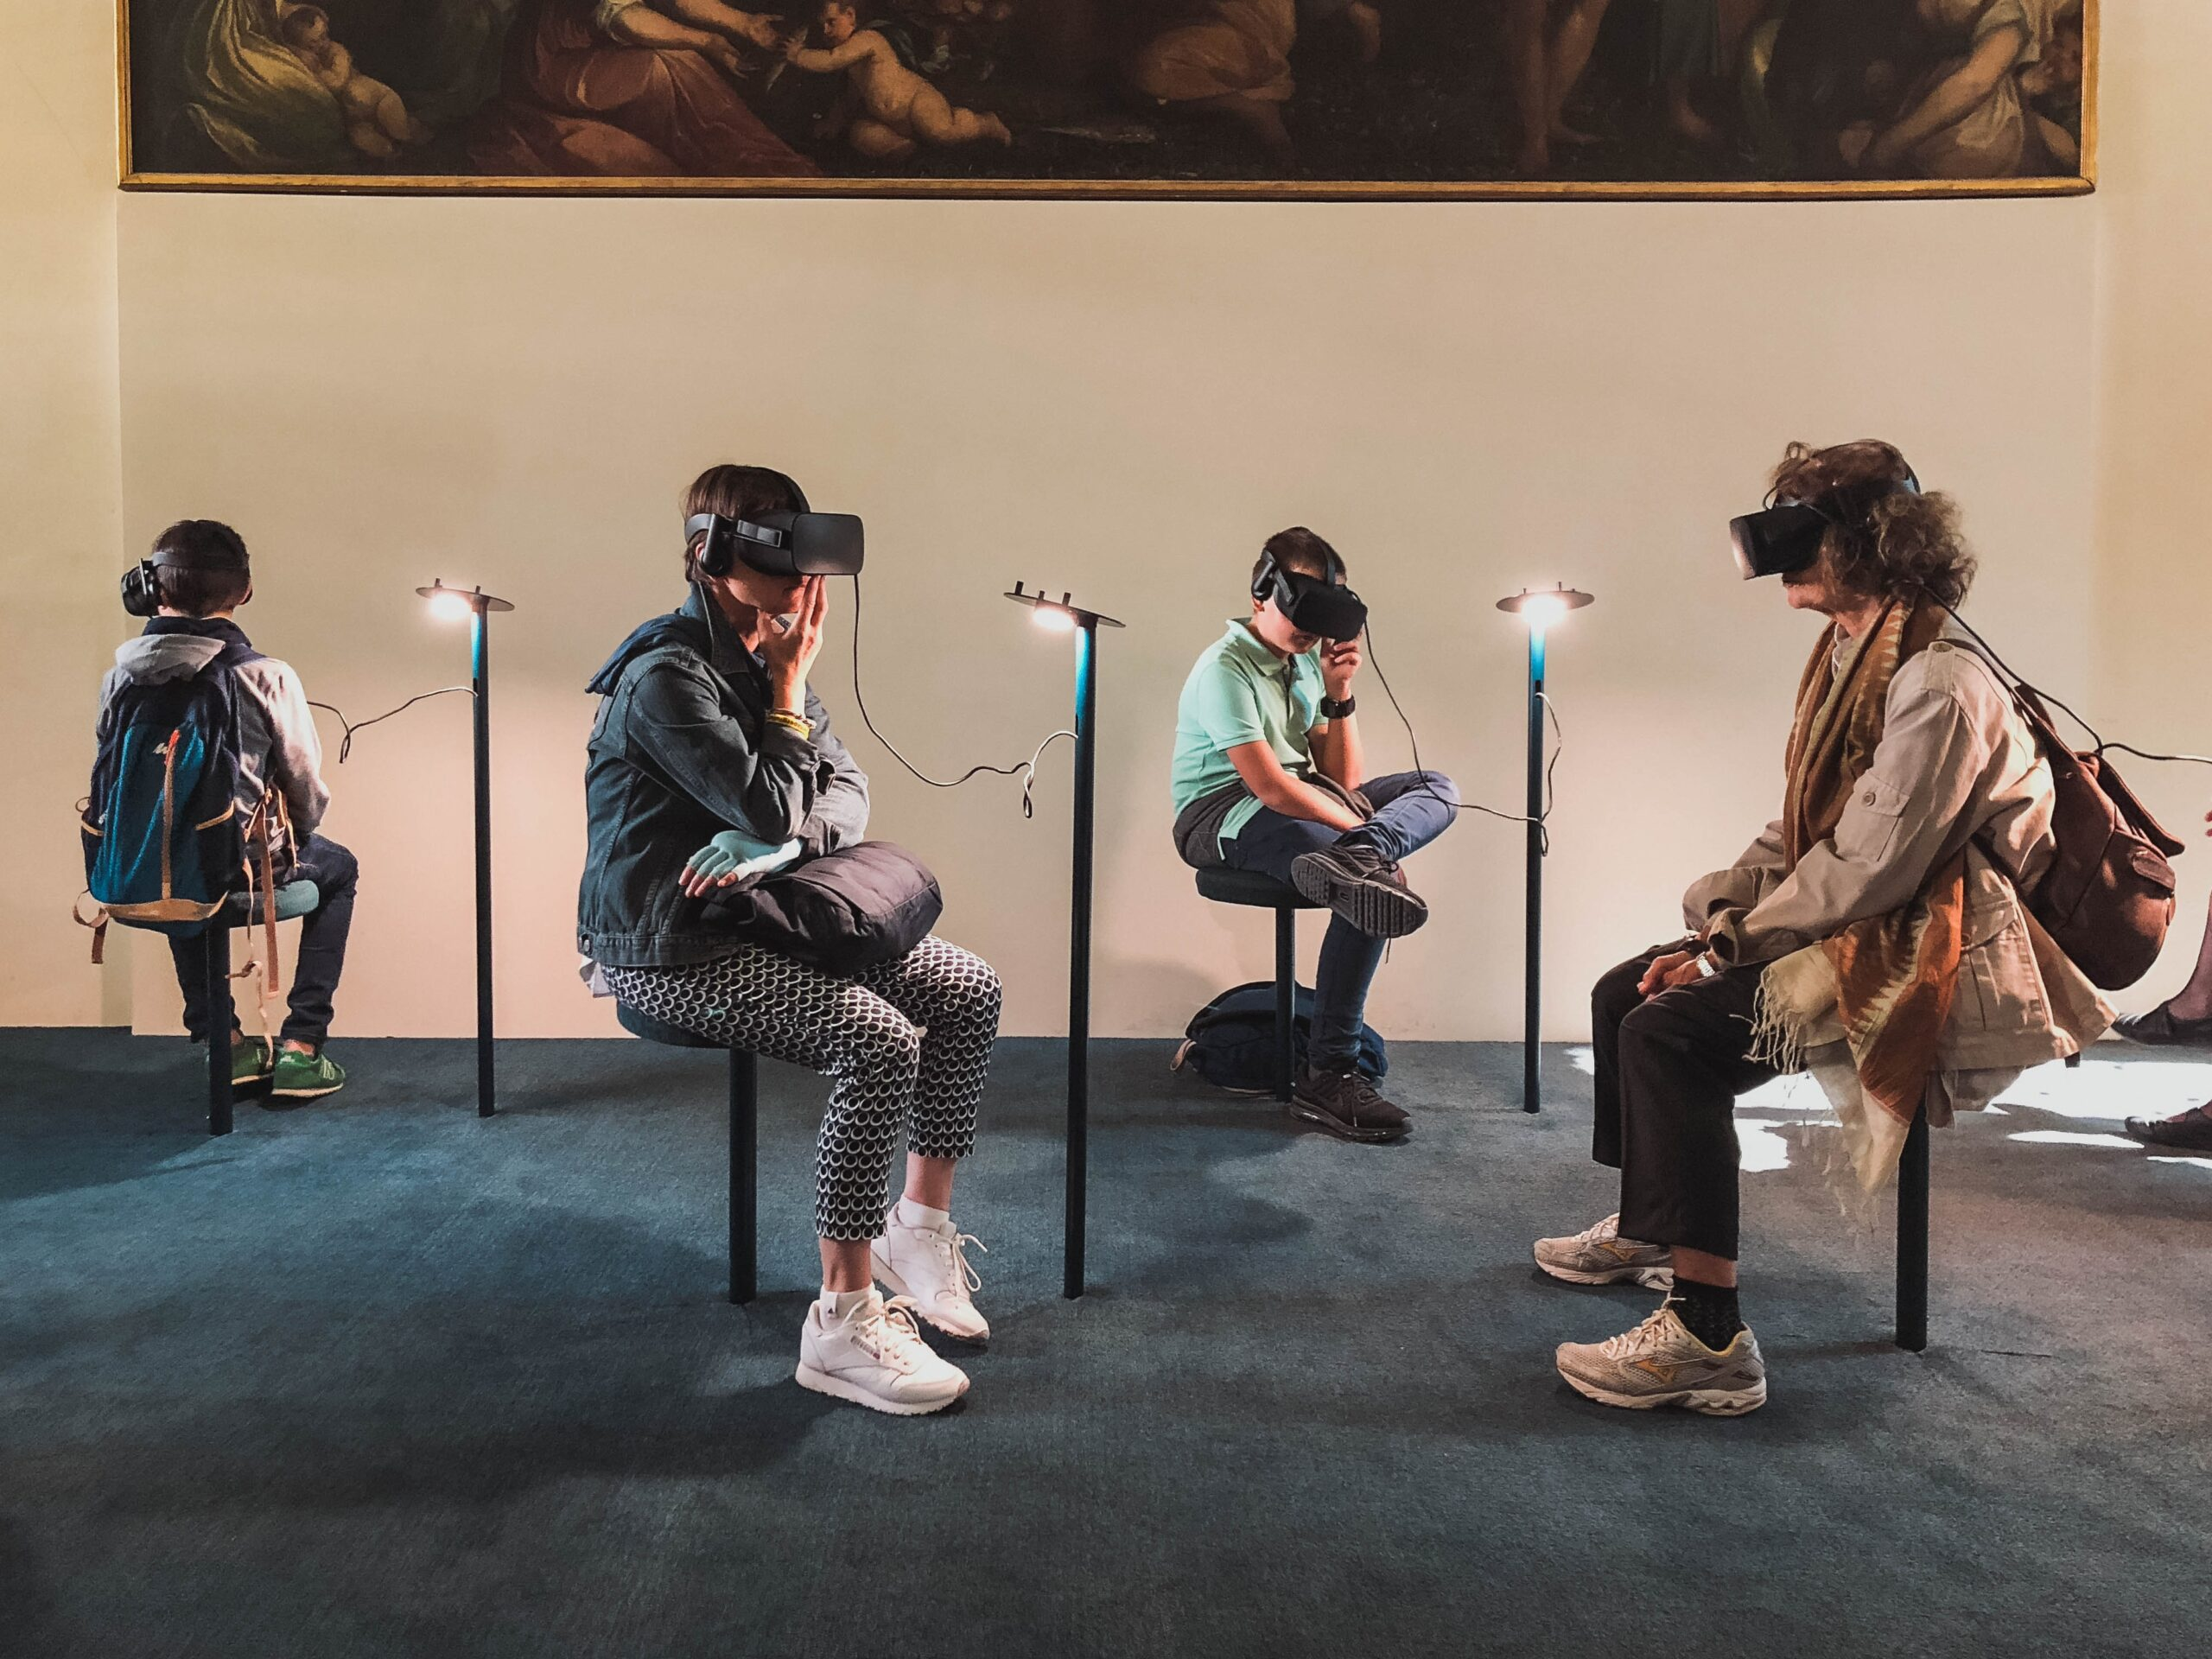 4 people using VR technology